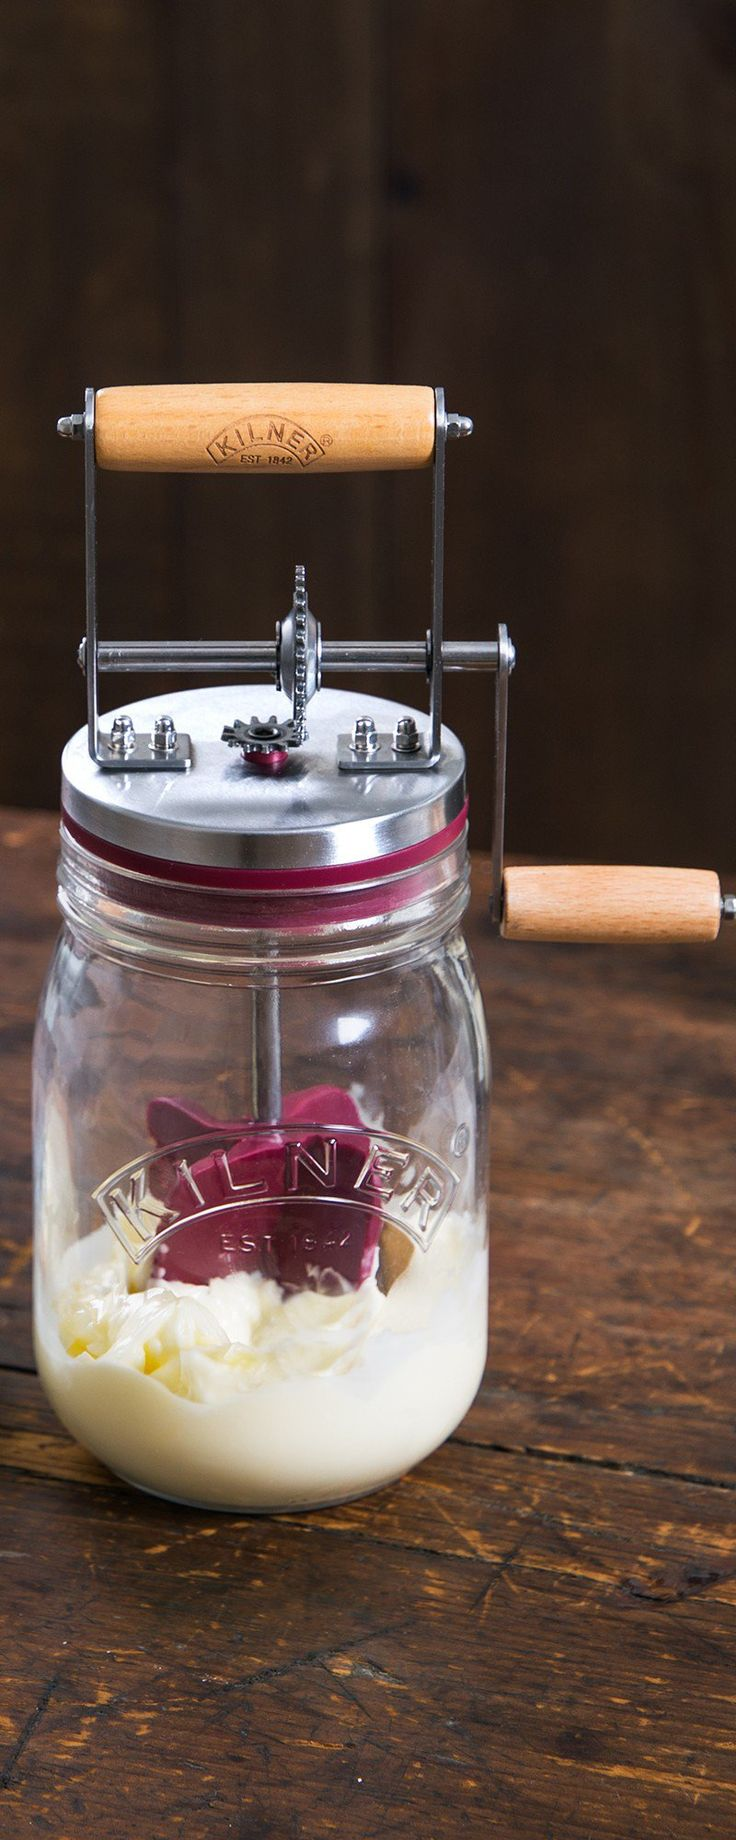 Make homemade butter in about 10 minutes. This modern update of an old-fashioned churner was designed by a trusted English glass jar maker.